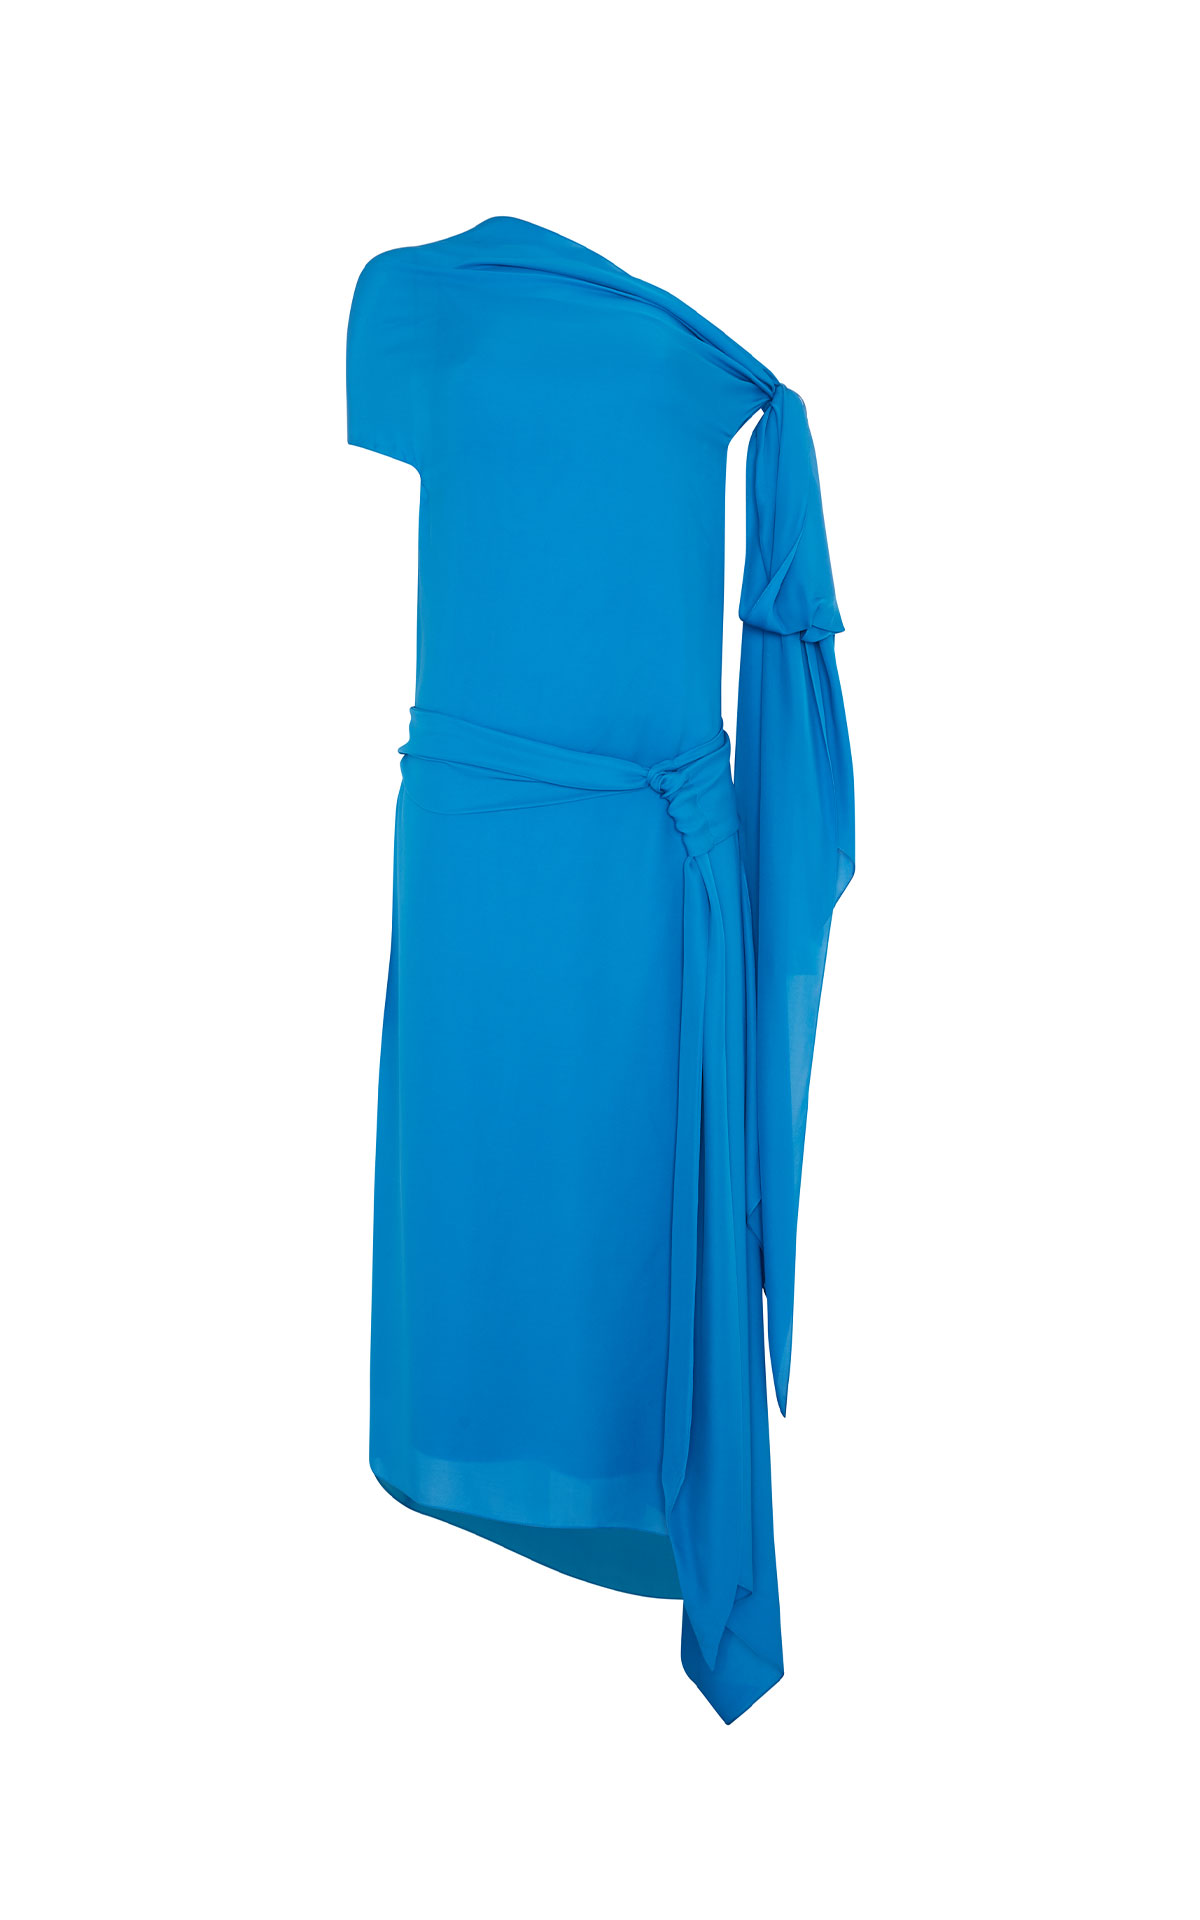 Roland Mouret Hadera azure blue dress from Bicester Village